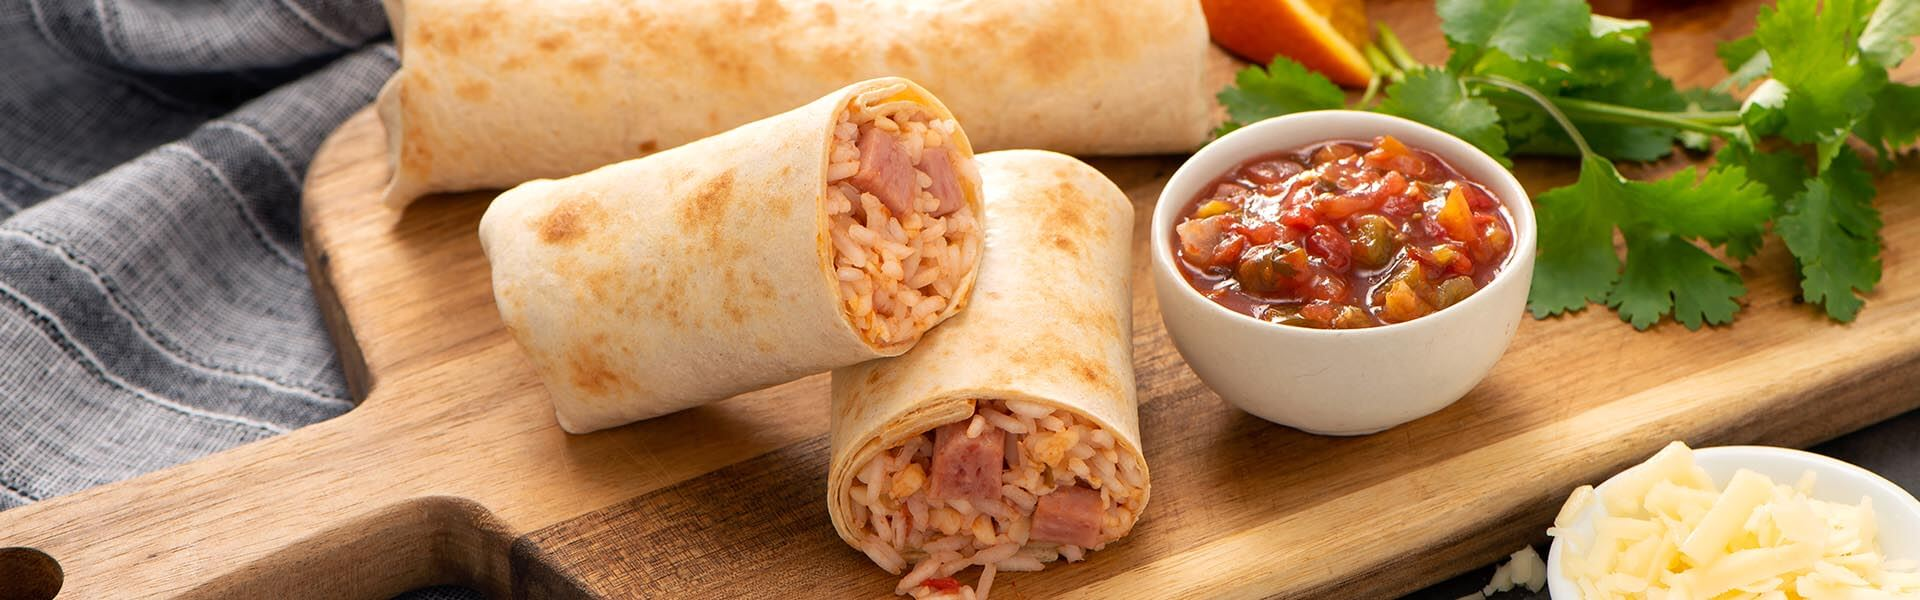 Breakfast Mexican Wraps